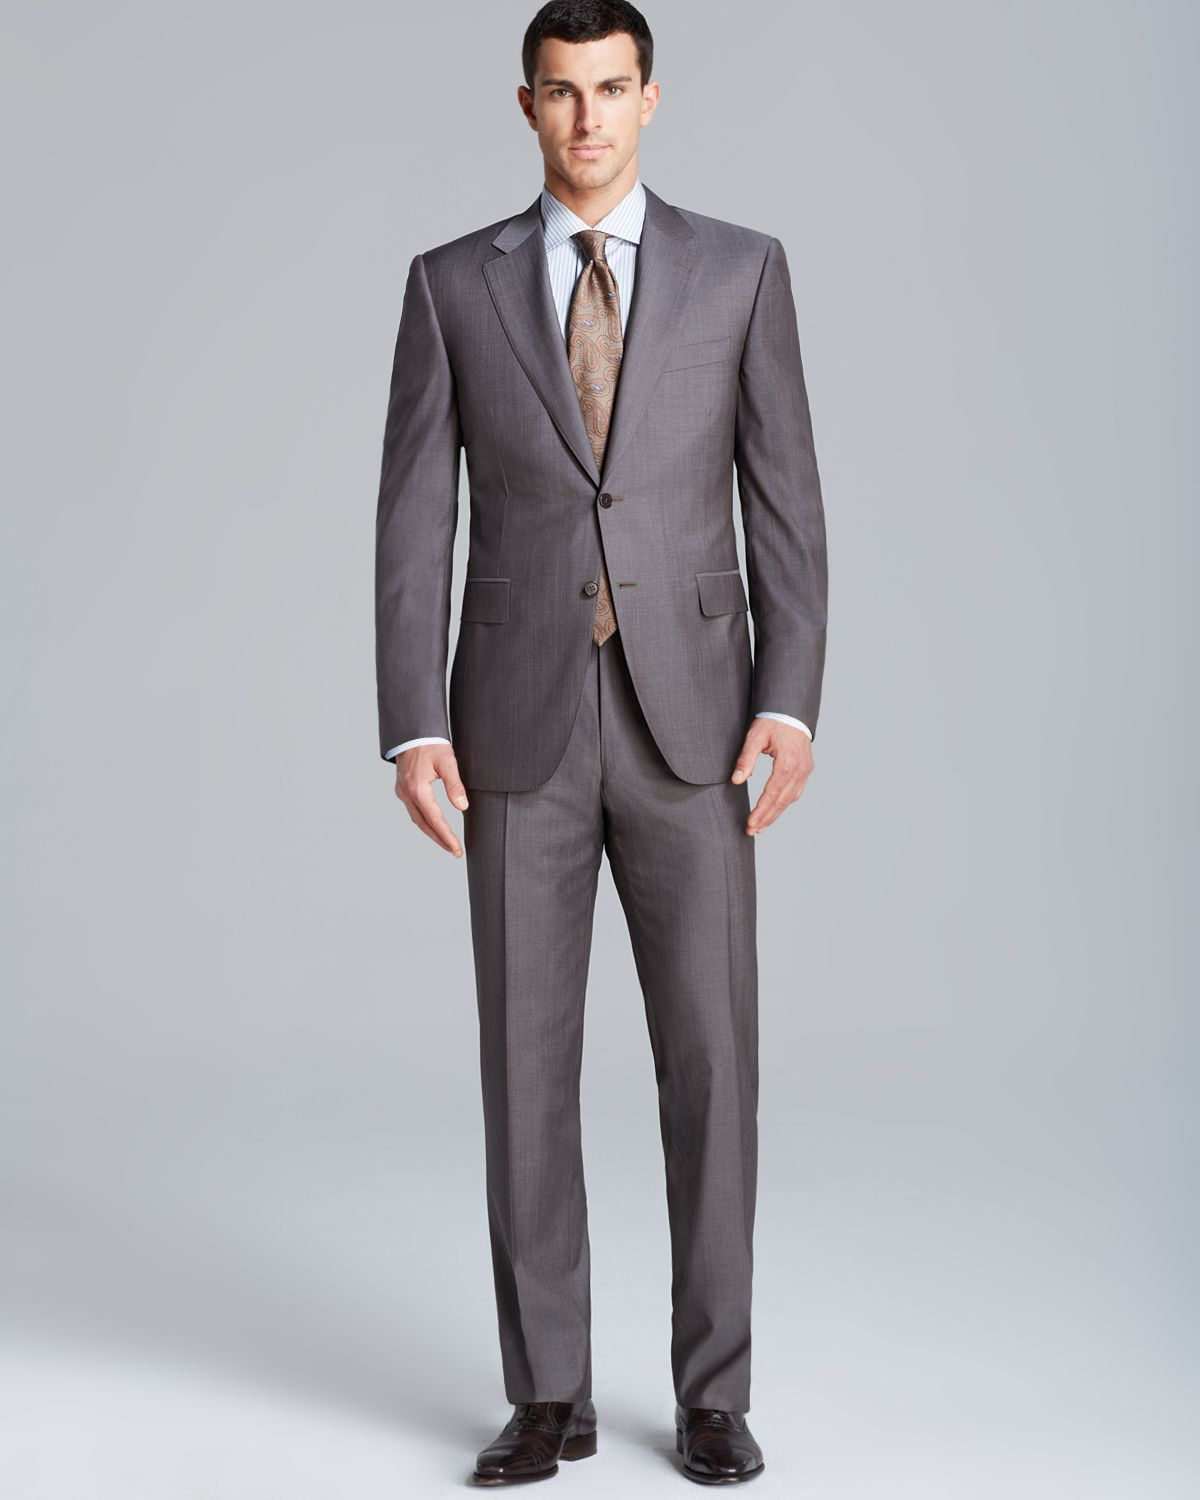 Canali Siena Solid Travel Suit Regular Fit In Brown For